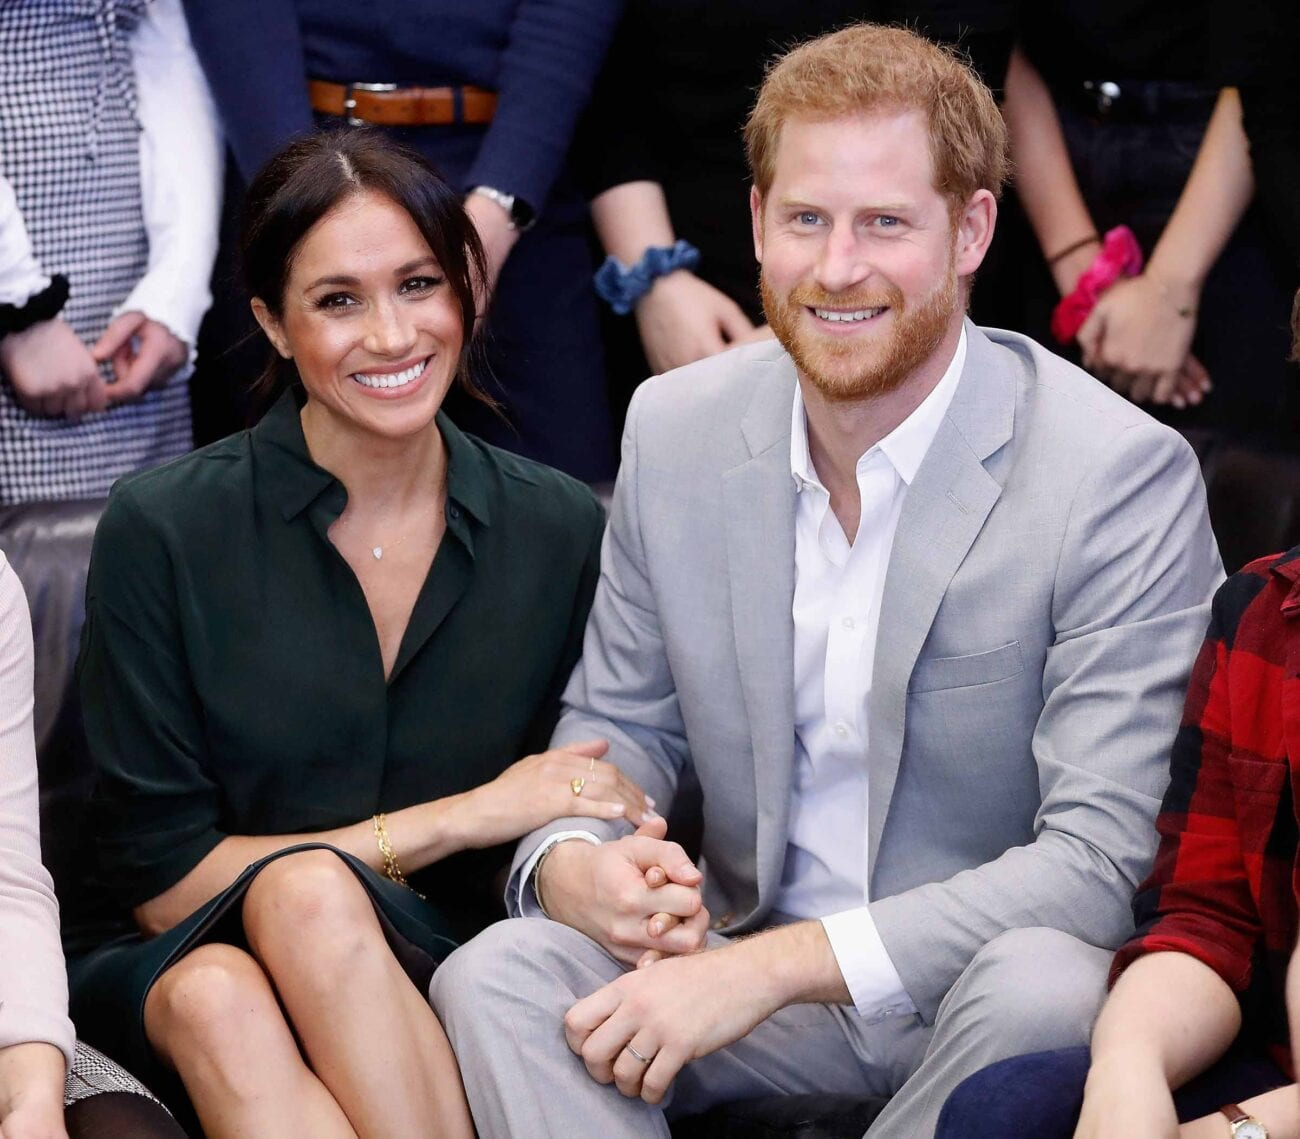 Prince Harry and Meghan Markle has made history with their Netflix deal, but will the Queen let them keep going forward with it?